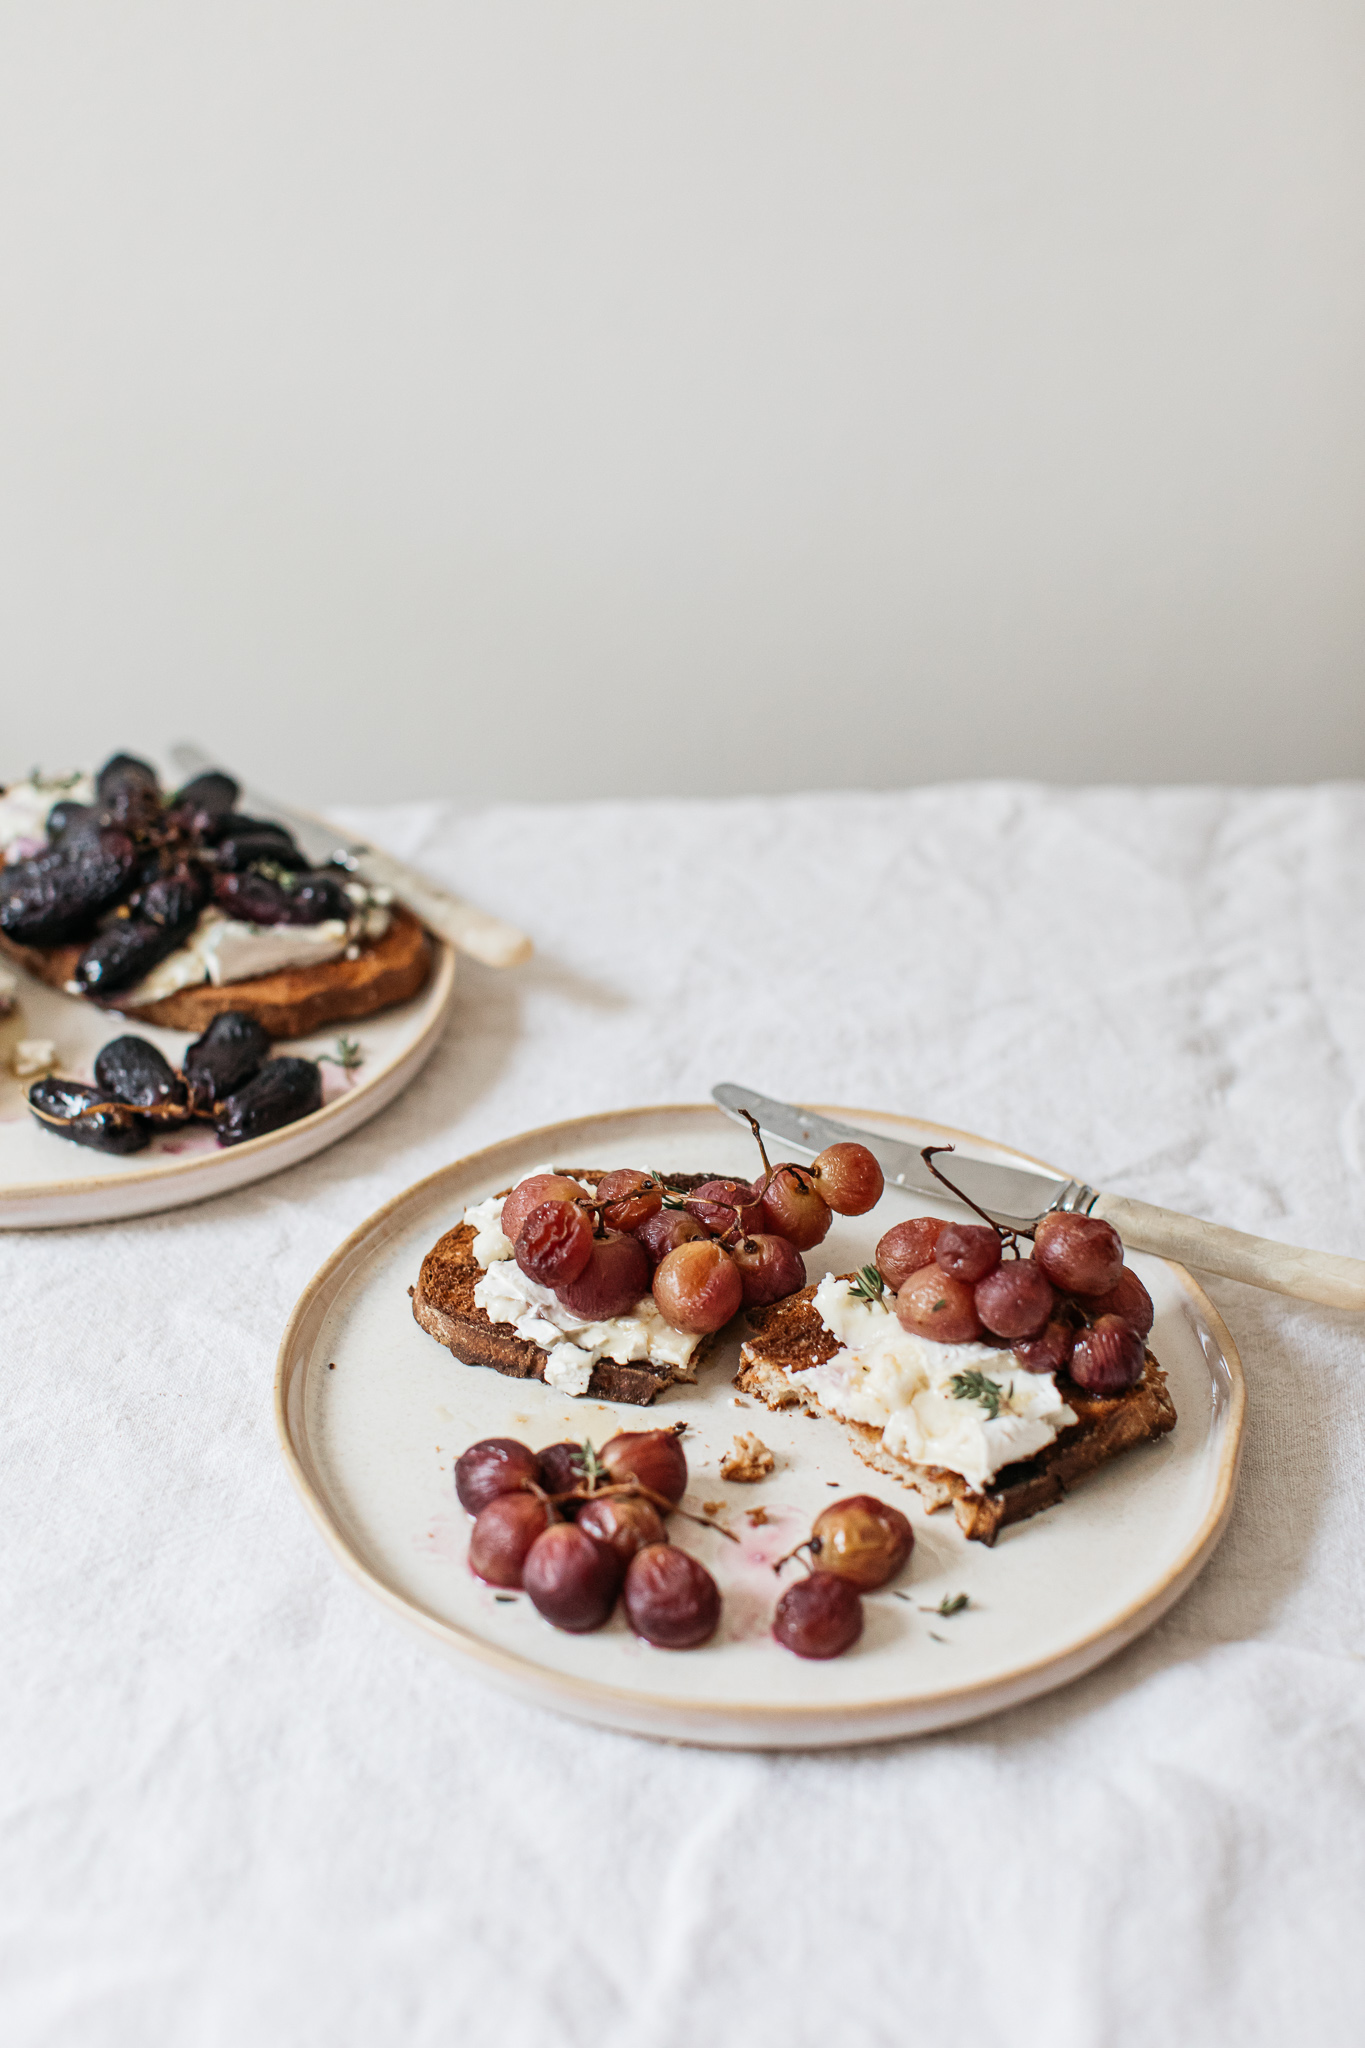 Roasted grapes on bread with goats cheese